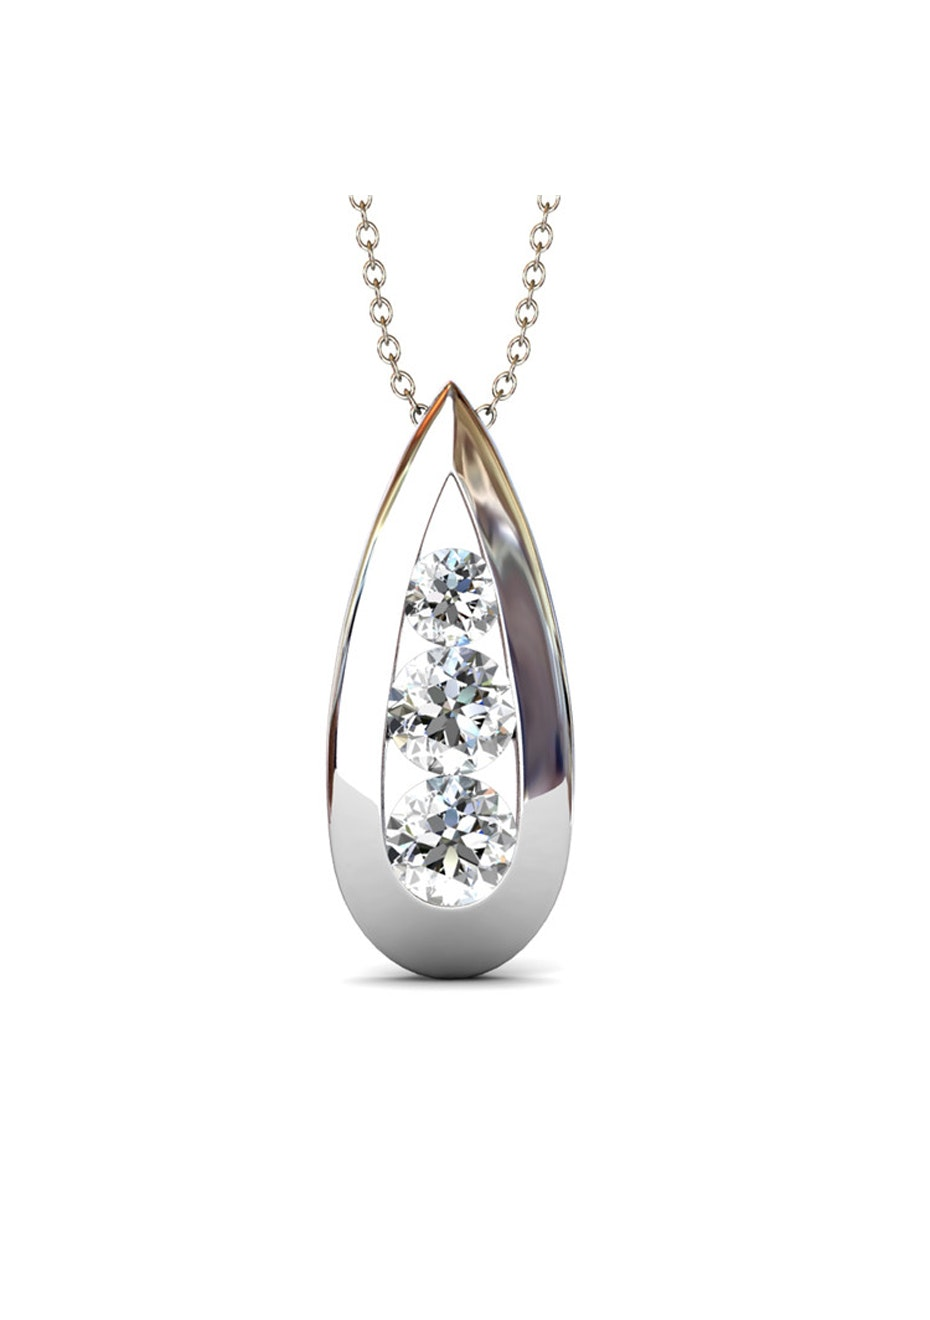 Teardrop Pendant Necklace Embellished with Crystals from Swarovski